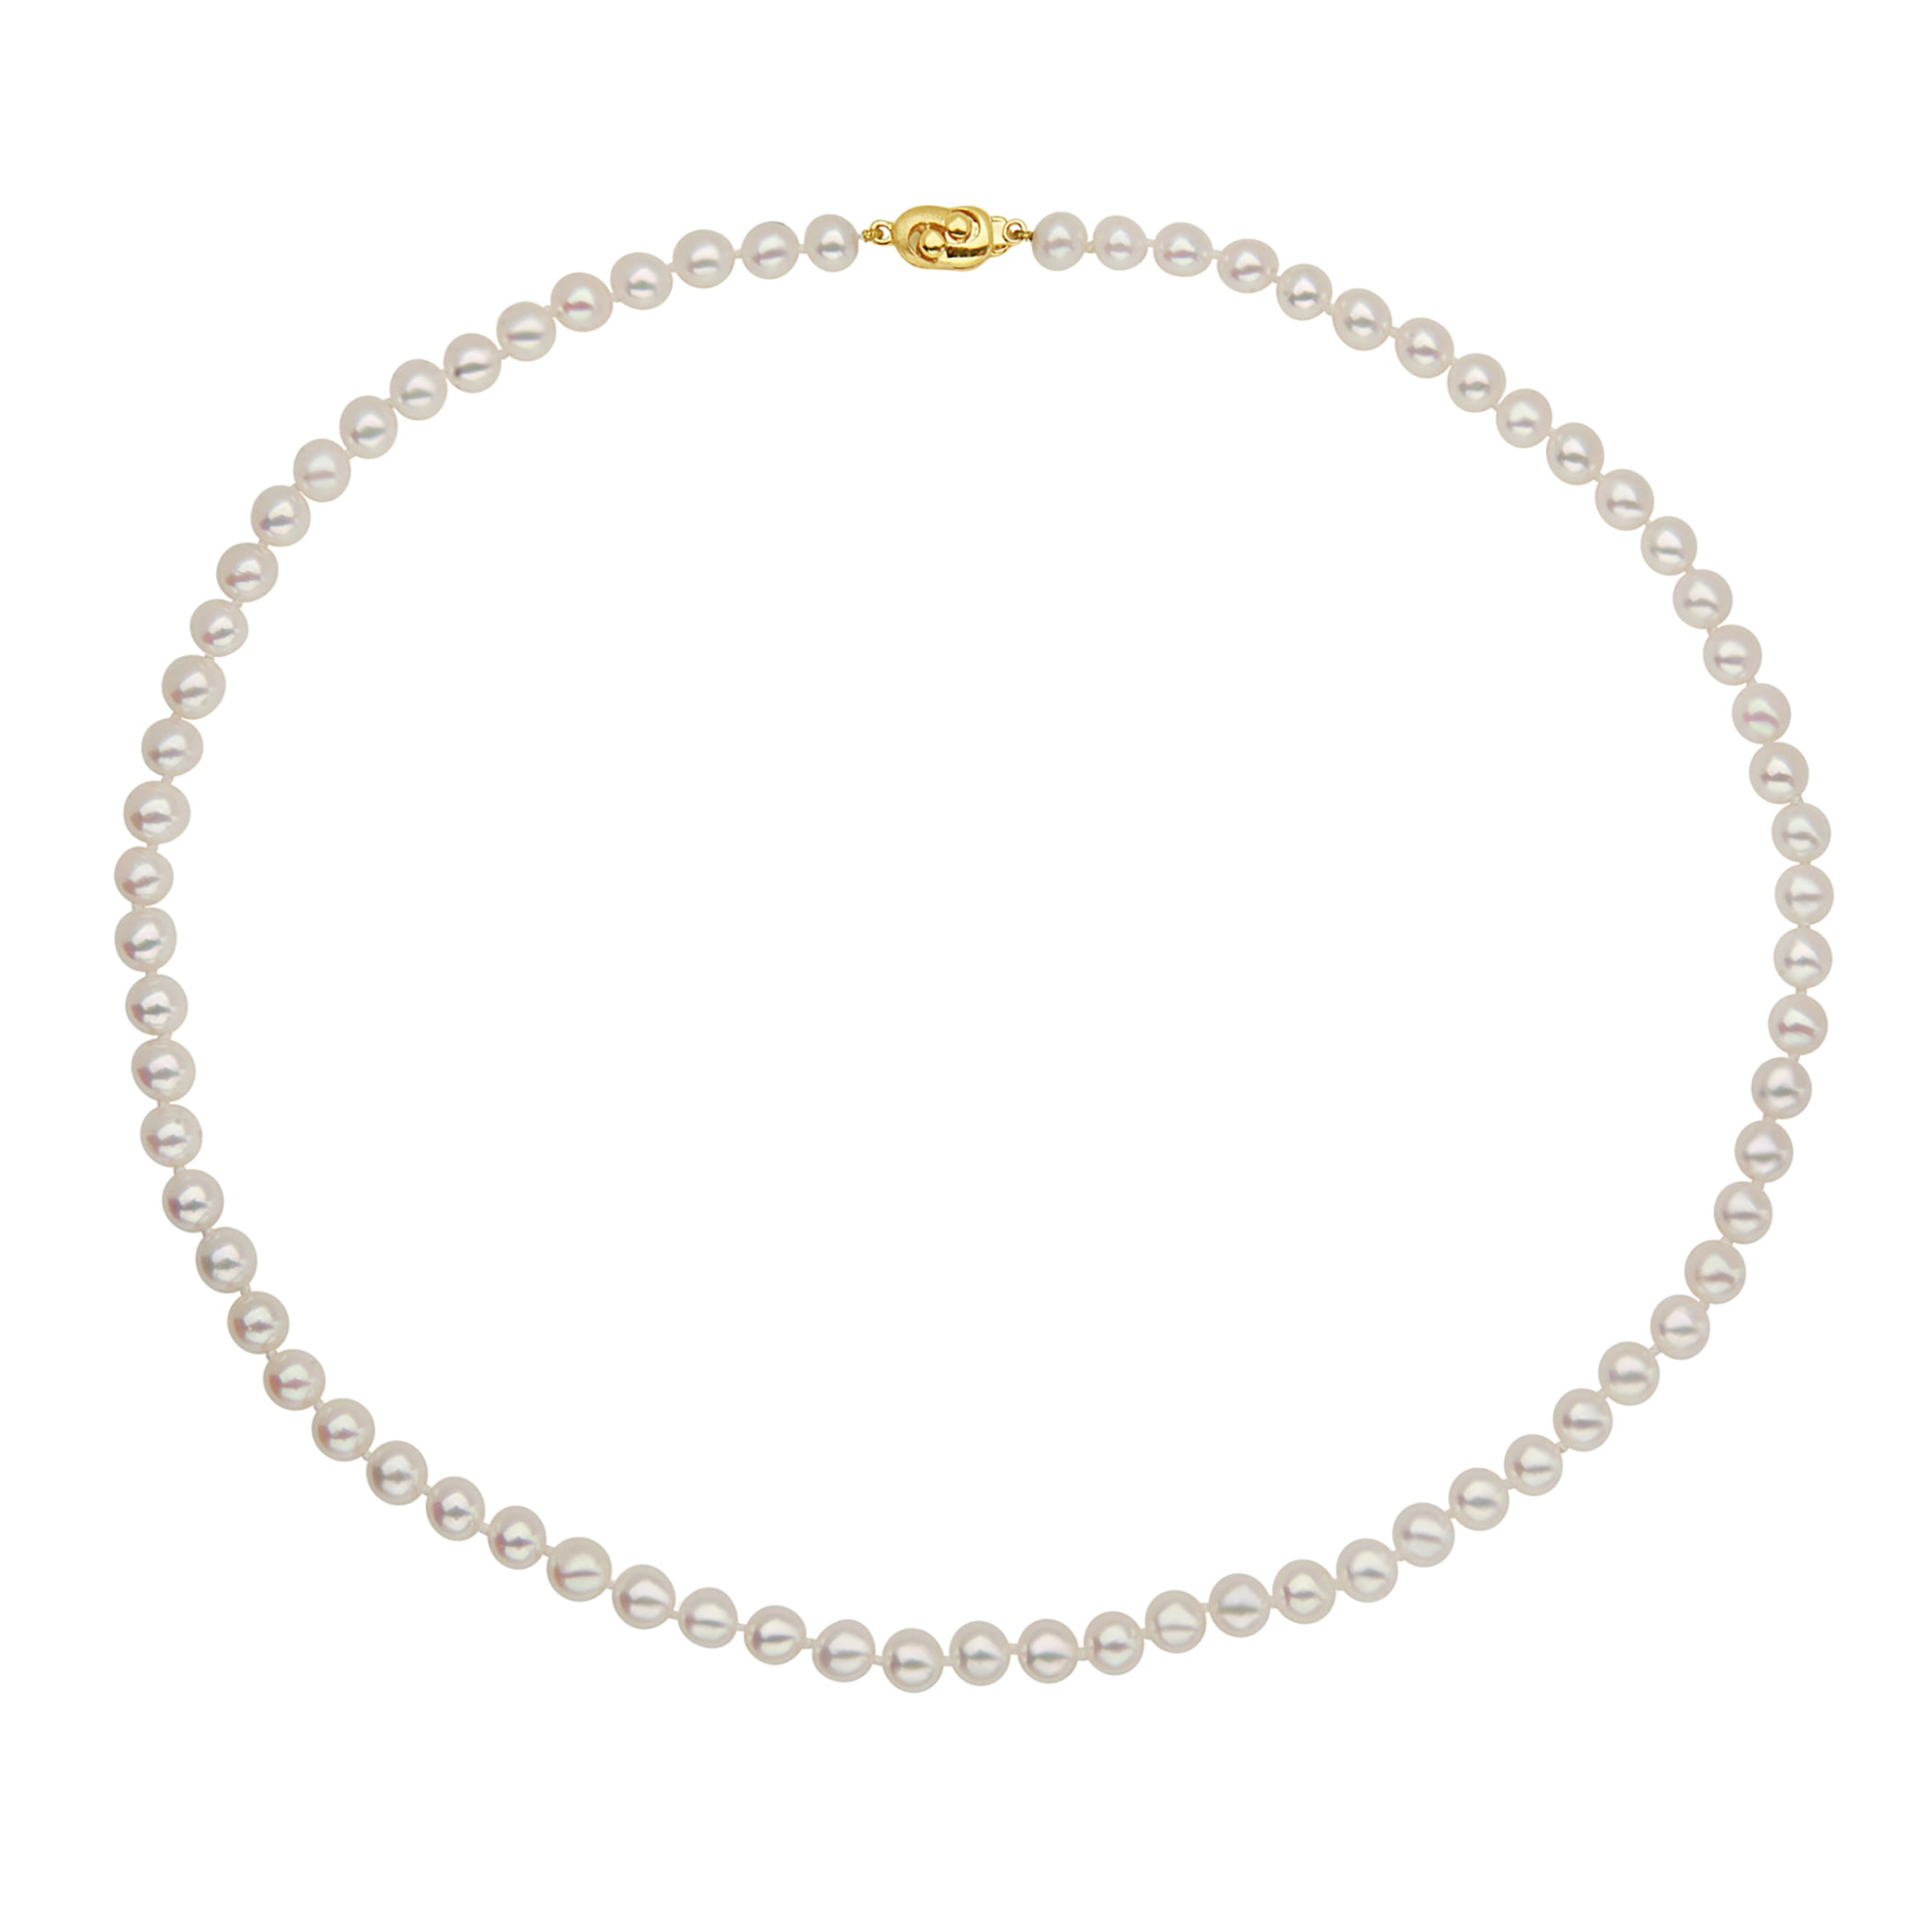 14k 7-7.5mm Akoya Cultured Pearl Necklace